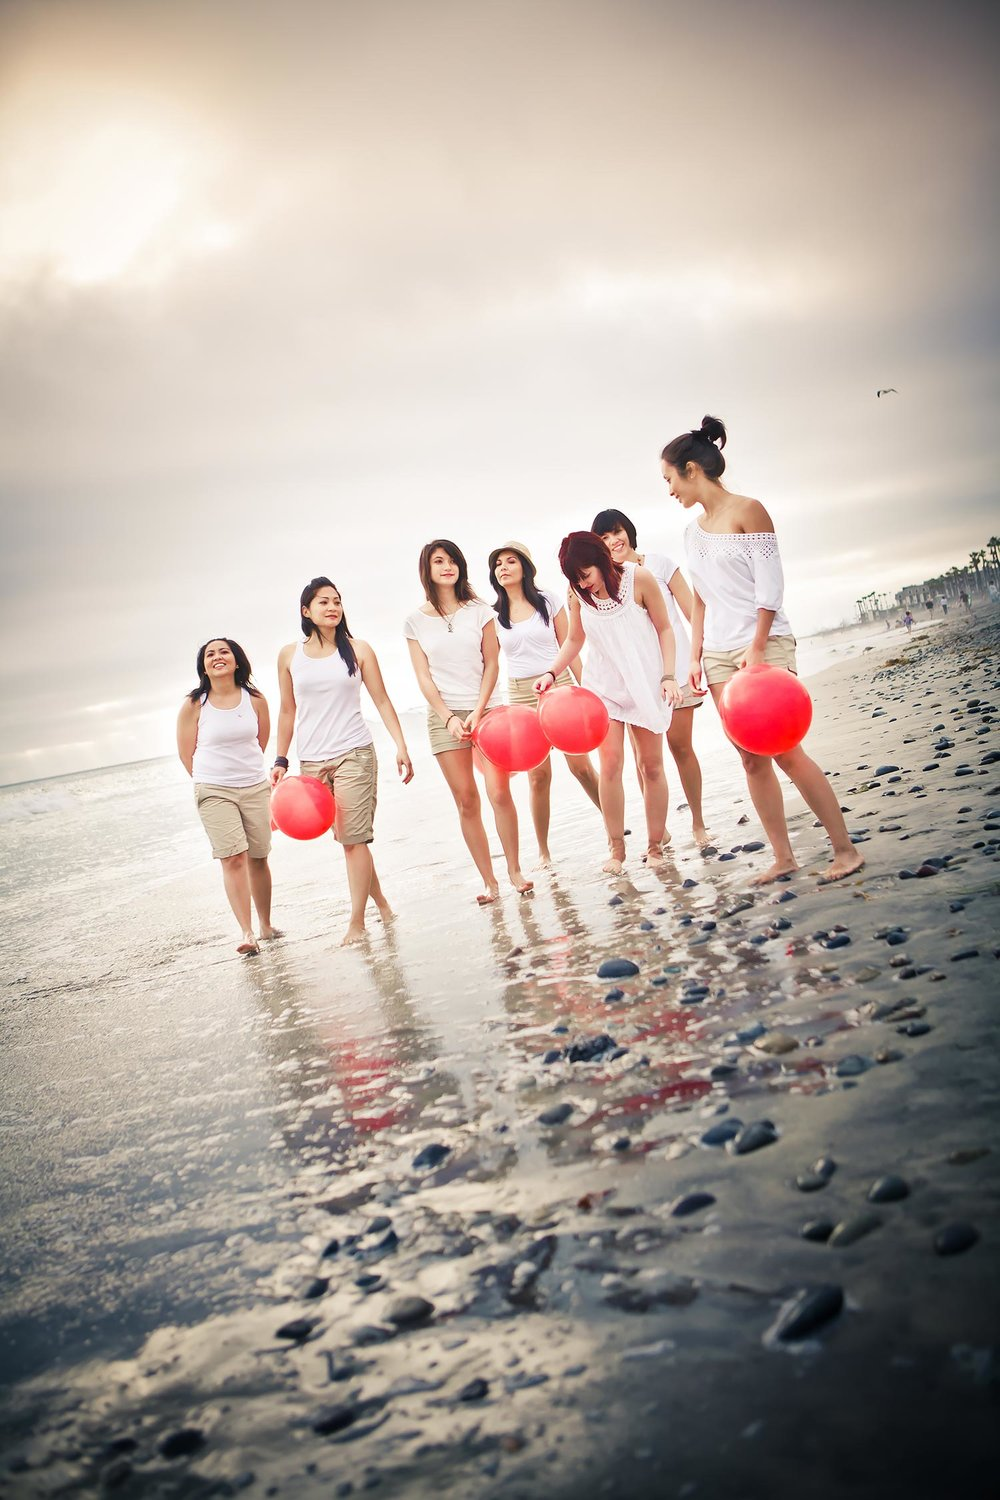 Oceanside Lifestyle Portraits | Stephen Grant Photography